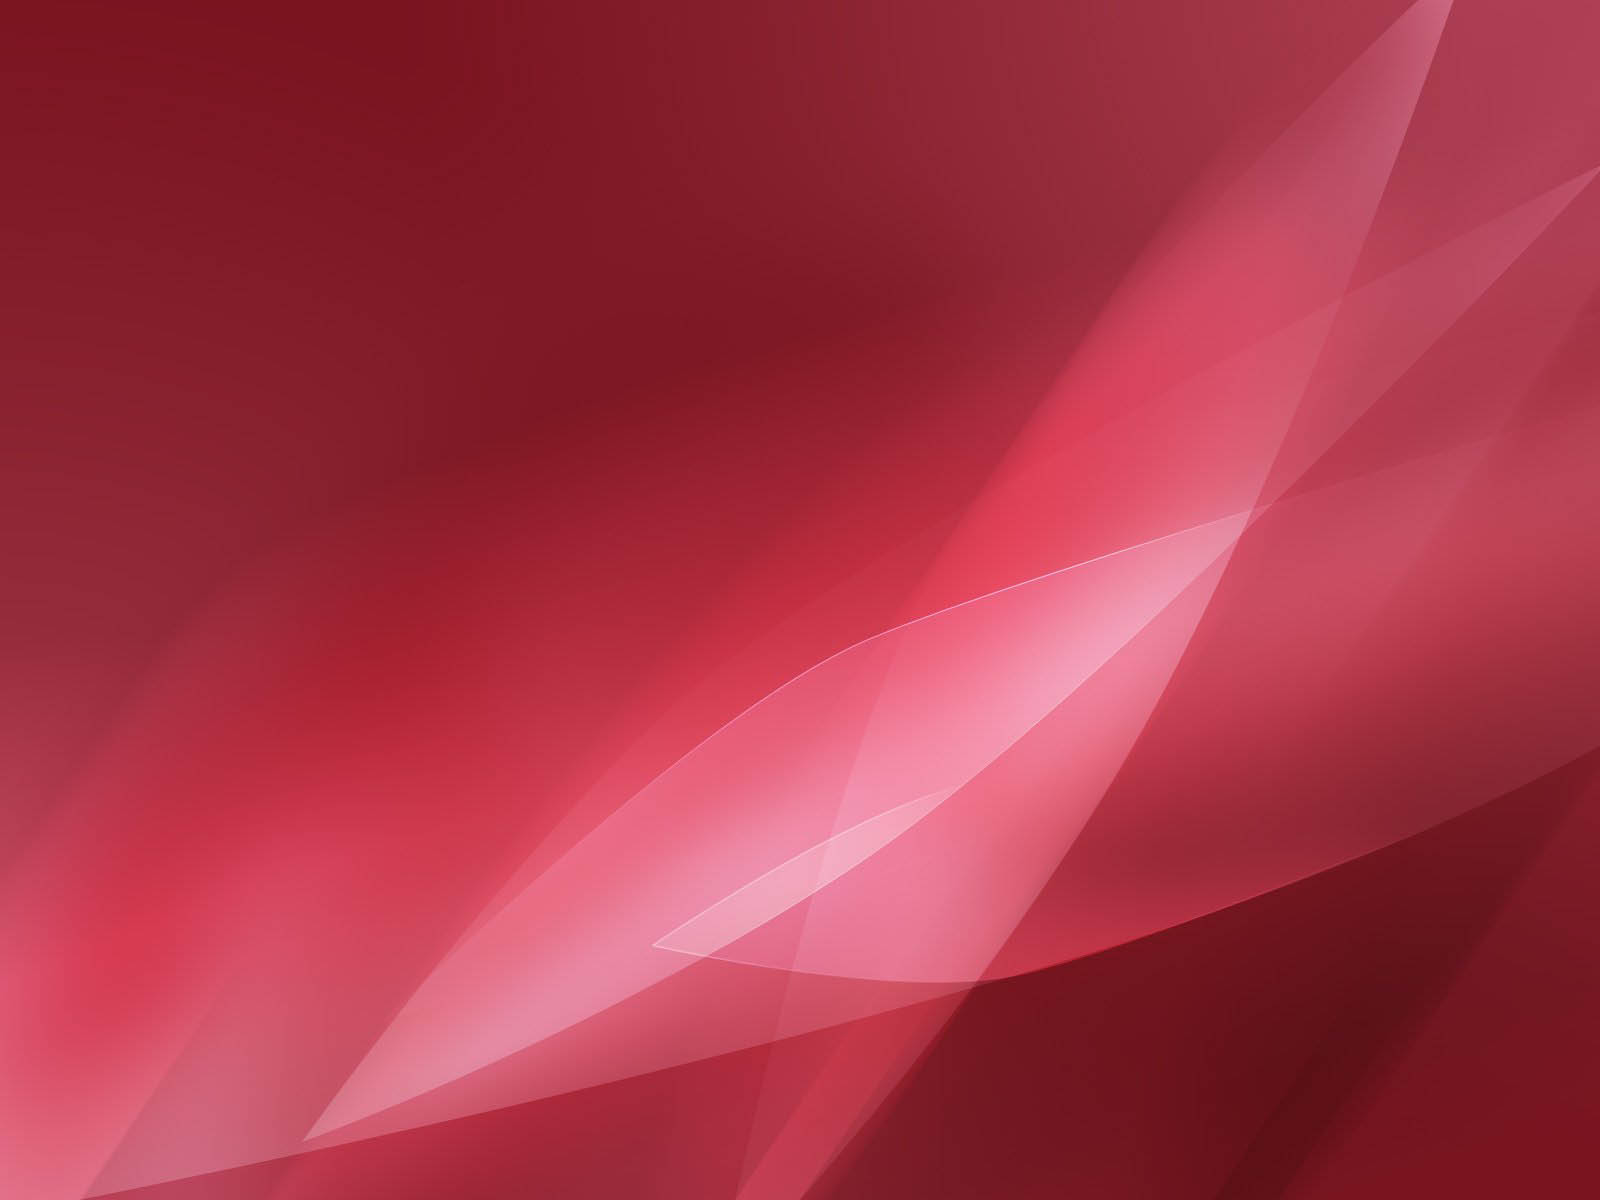 wallpapers: Abstract Red Wallpapers